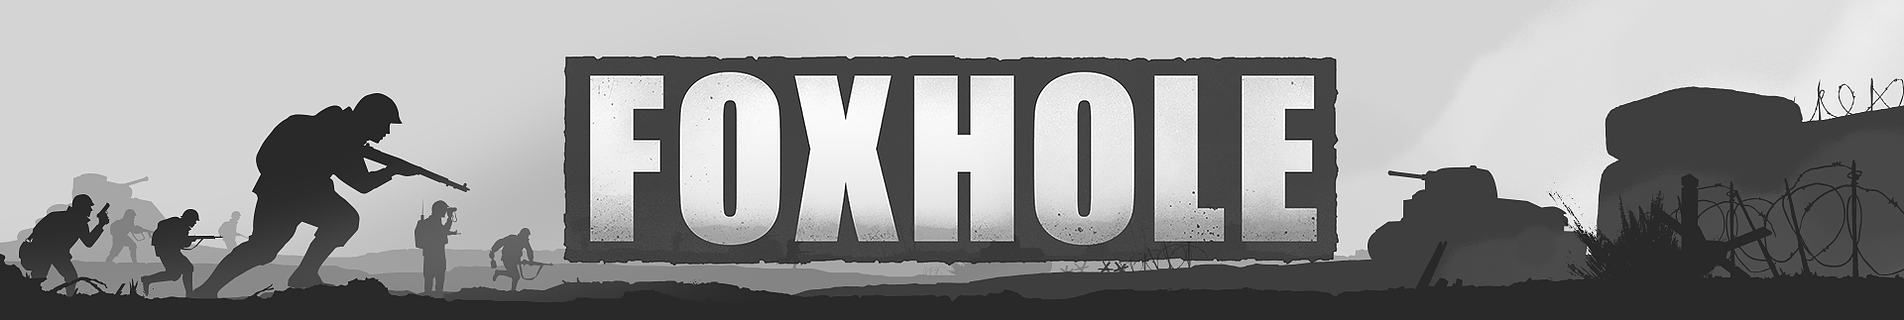 Support | foxhole